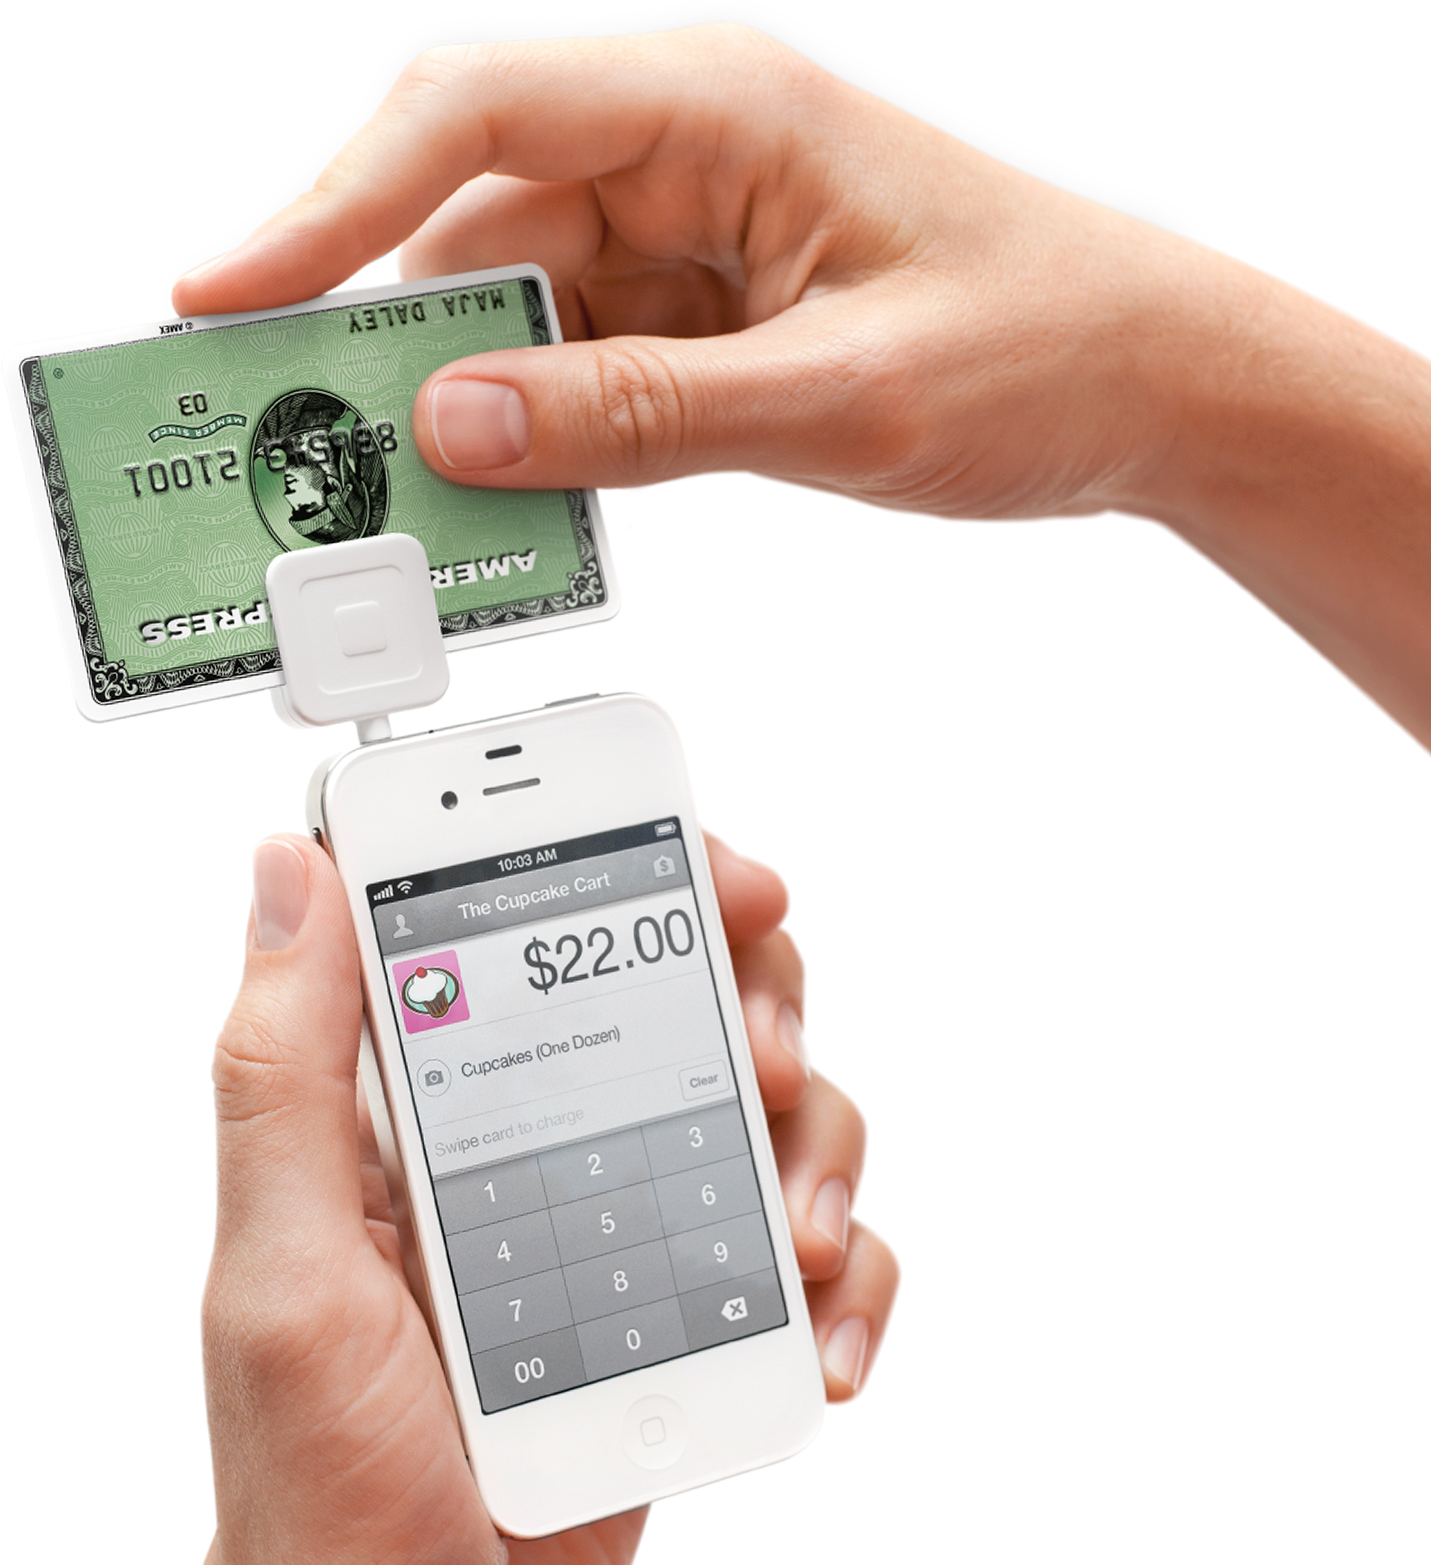 Take credit card payments on your phone